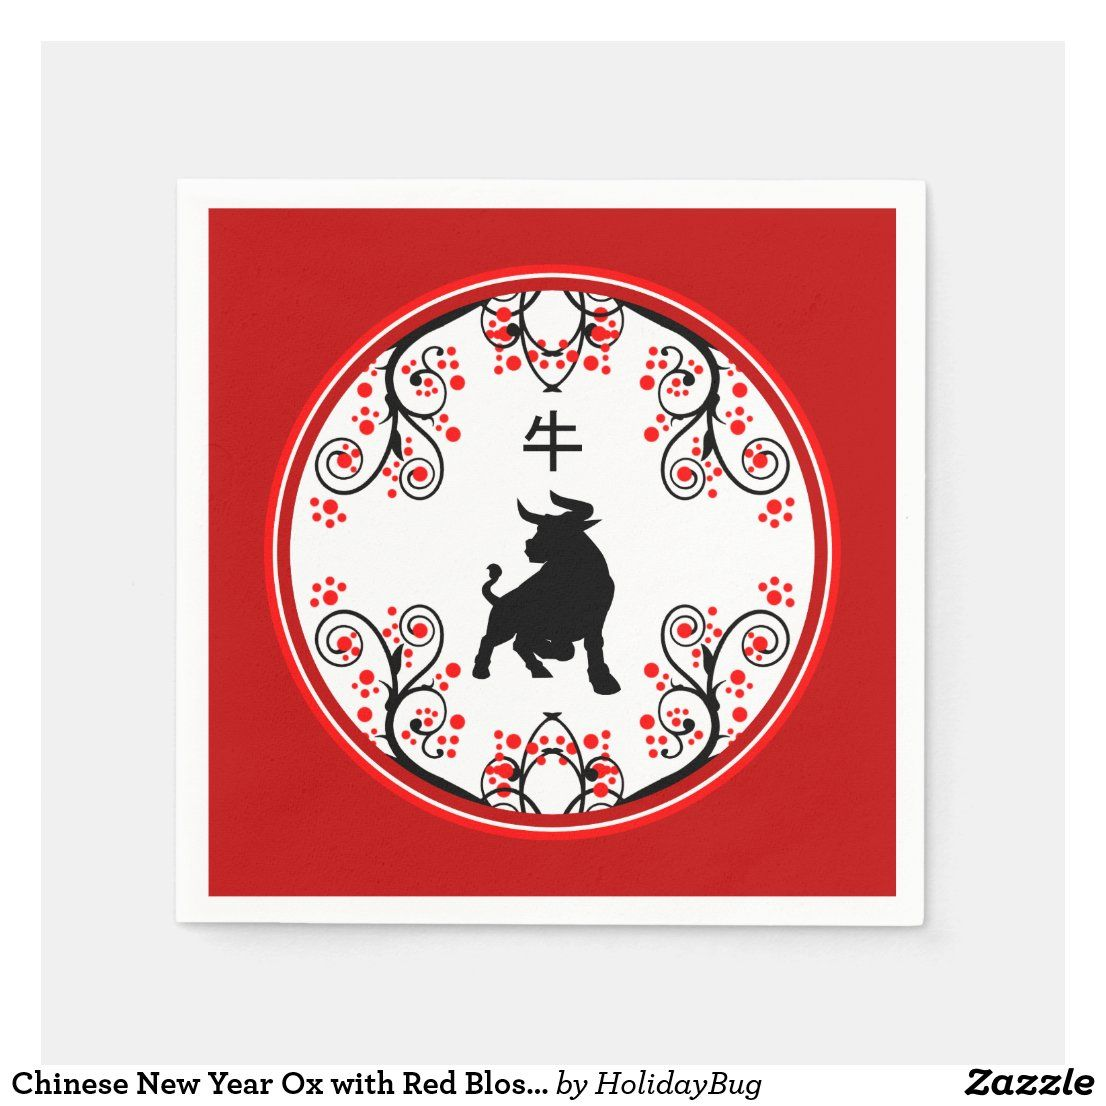 Chinese New Year Ox with Red Blossoms Napkins